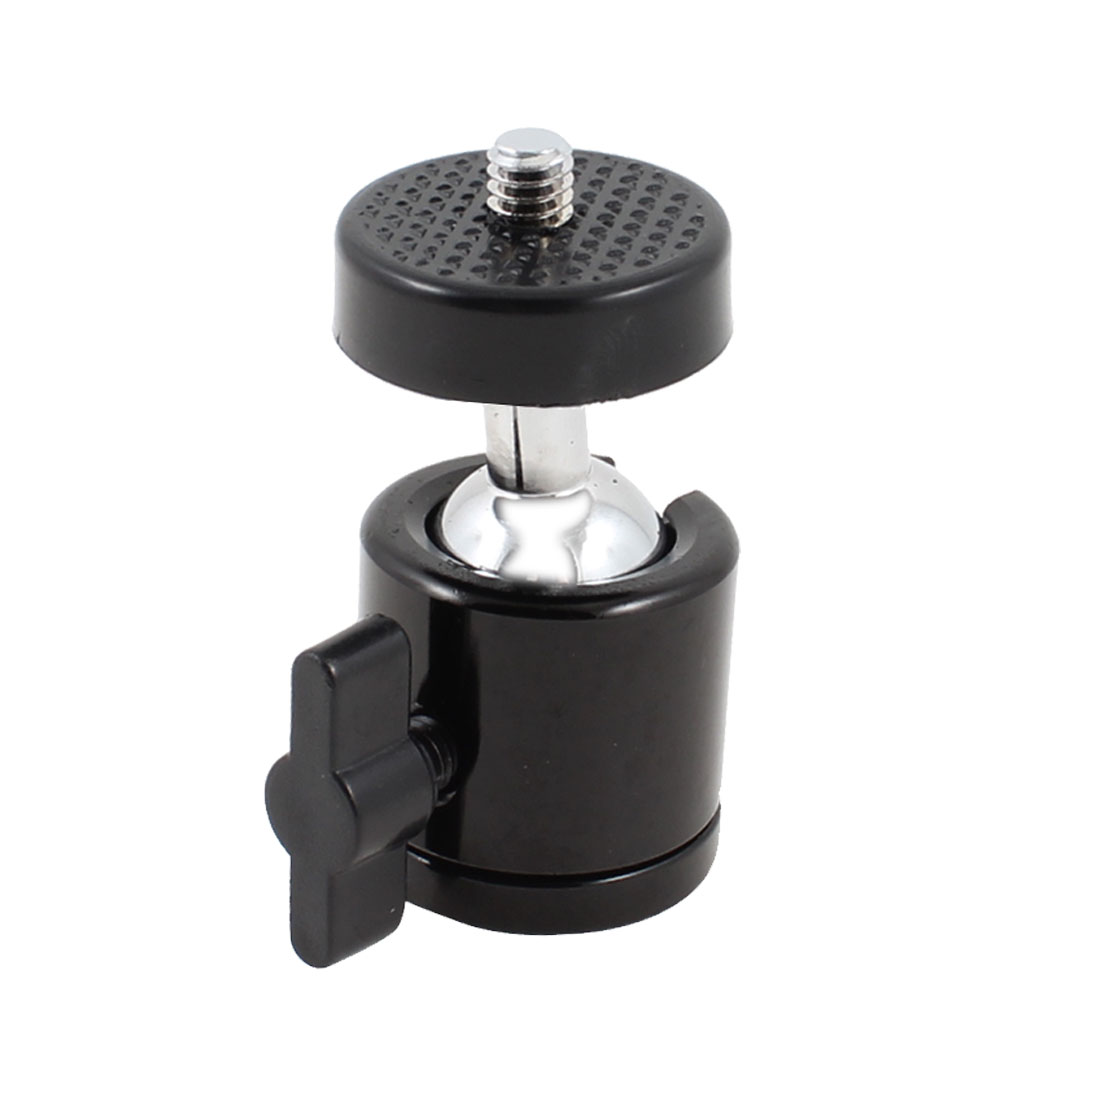 60mm High 360 Degrees Rotation Black Plastic Hot Shoe Mount Holder Bracket